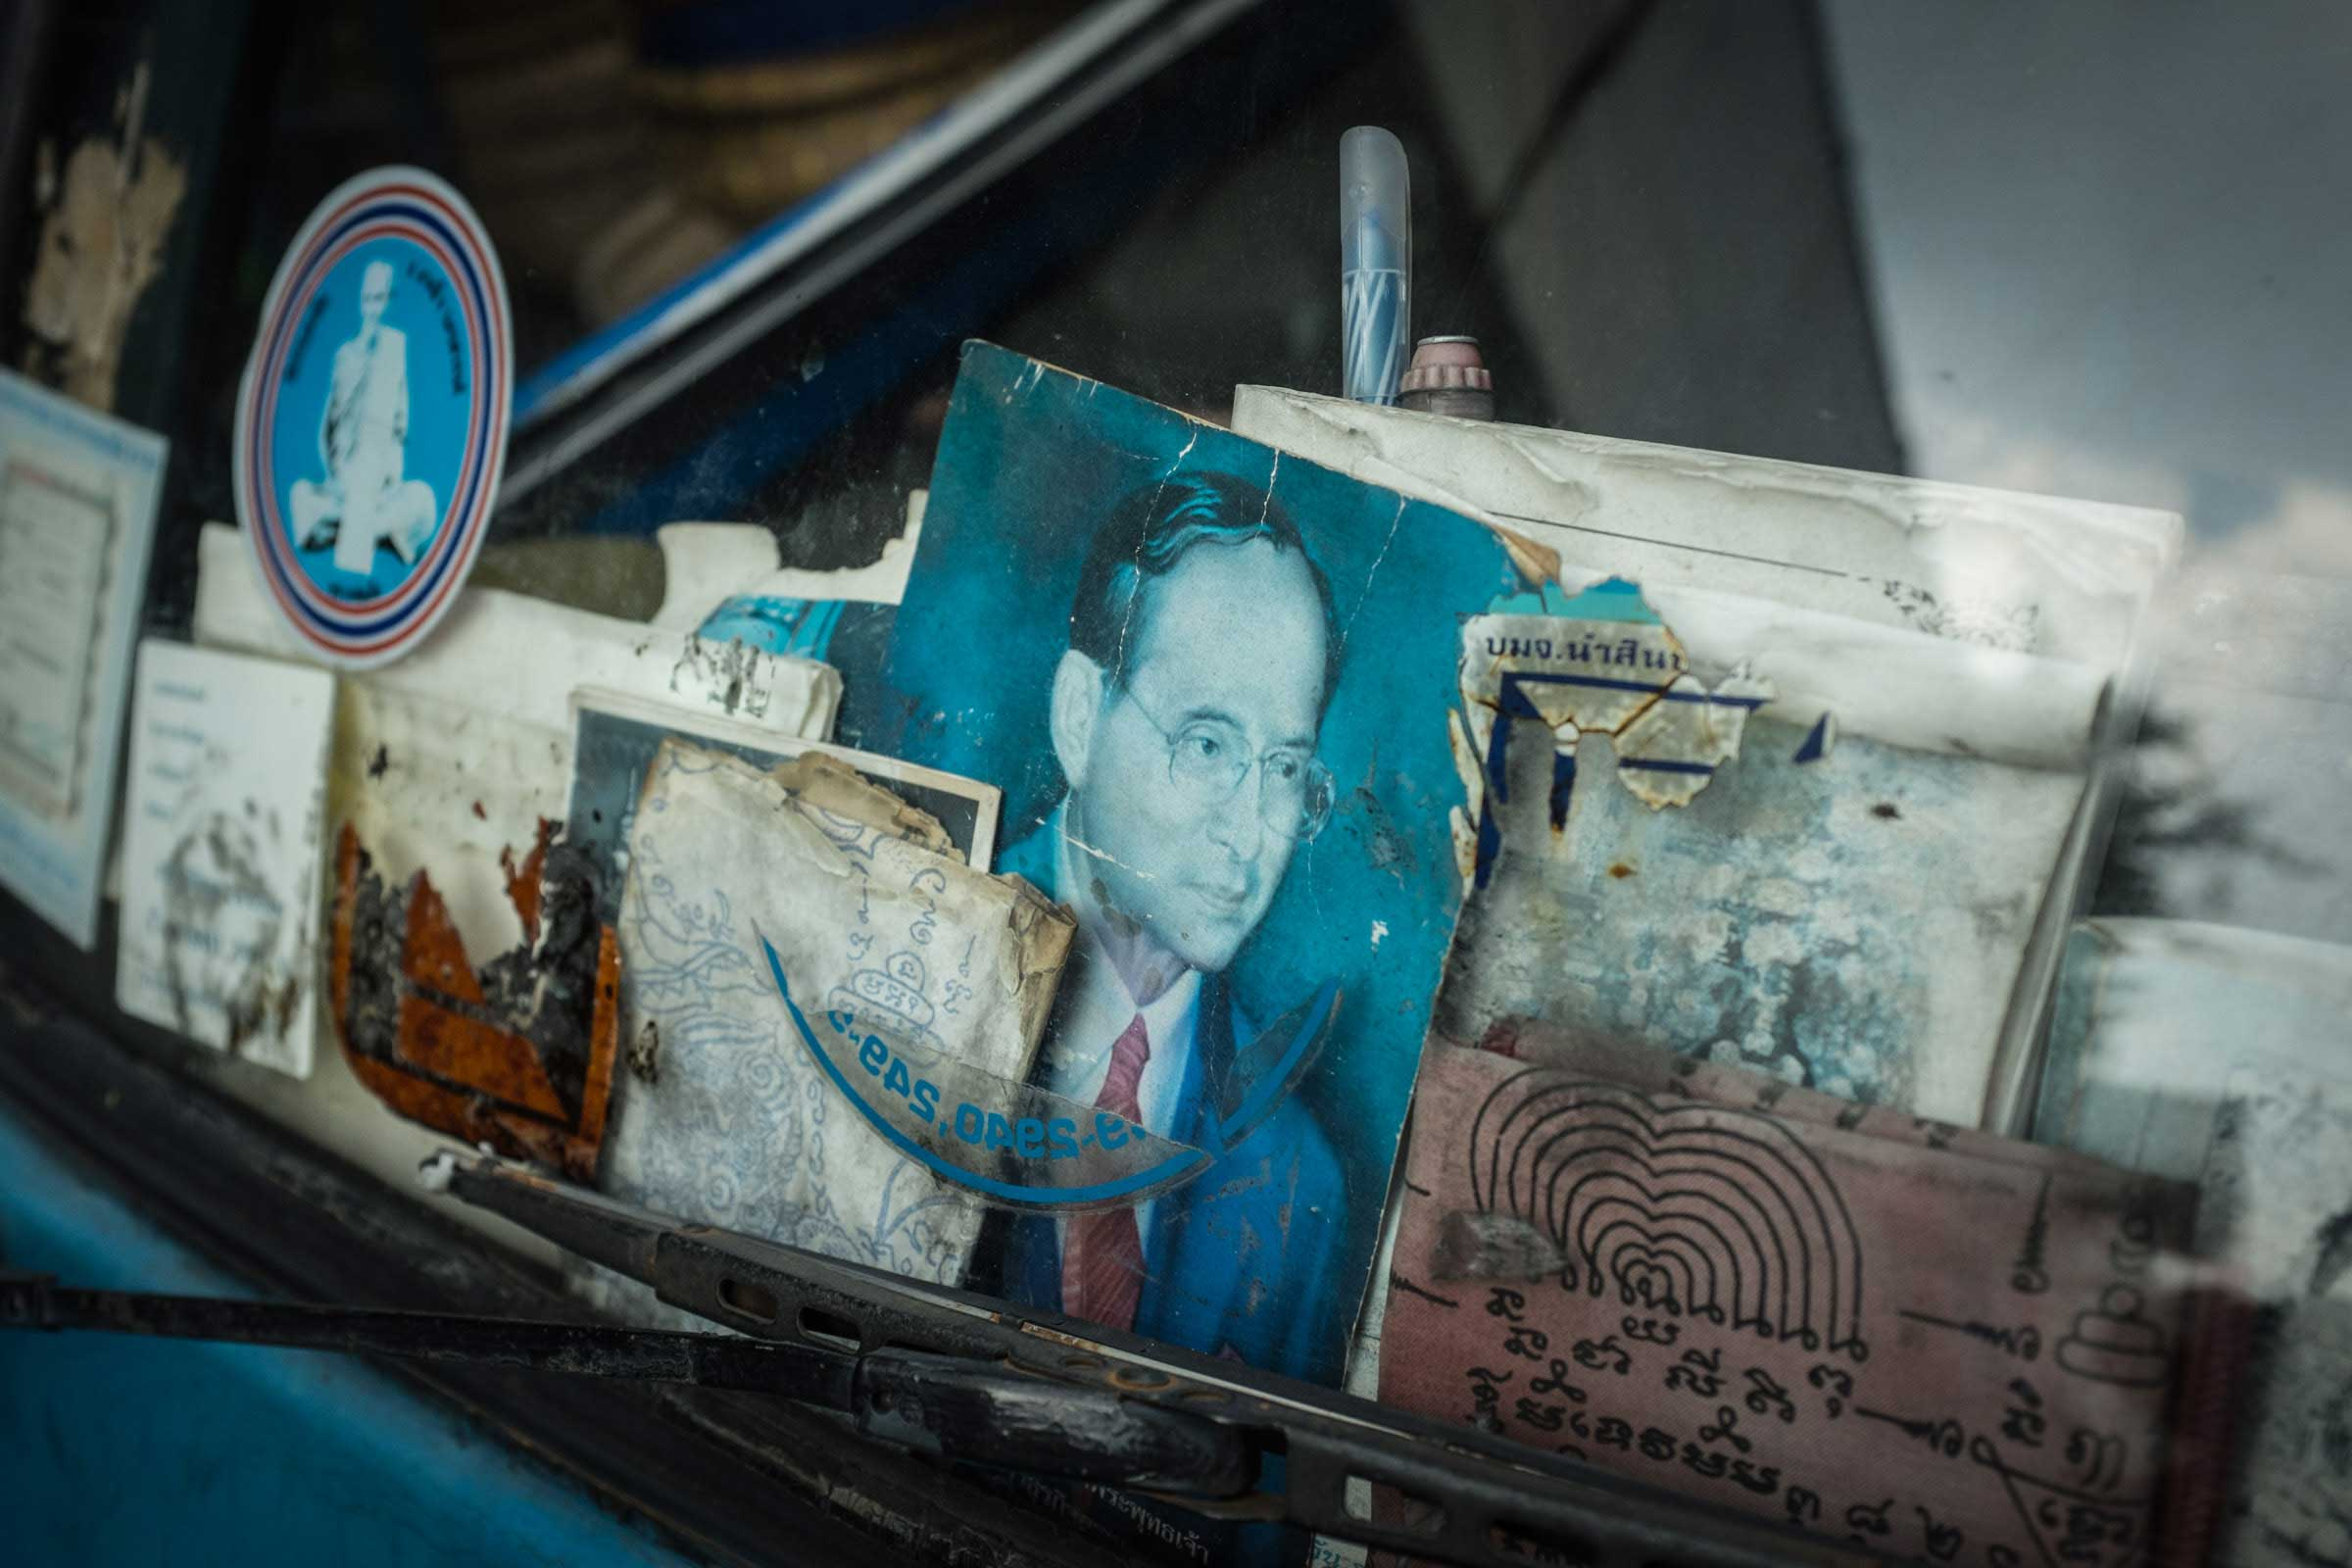 A portrait of the beloved and revered King Bhumibol Adulyadej of Thailand, also known as Rama IX, is visible from the rear windshield of a car in Nov. 2014.